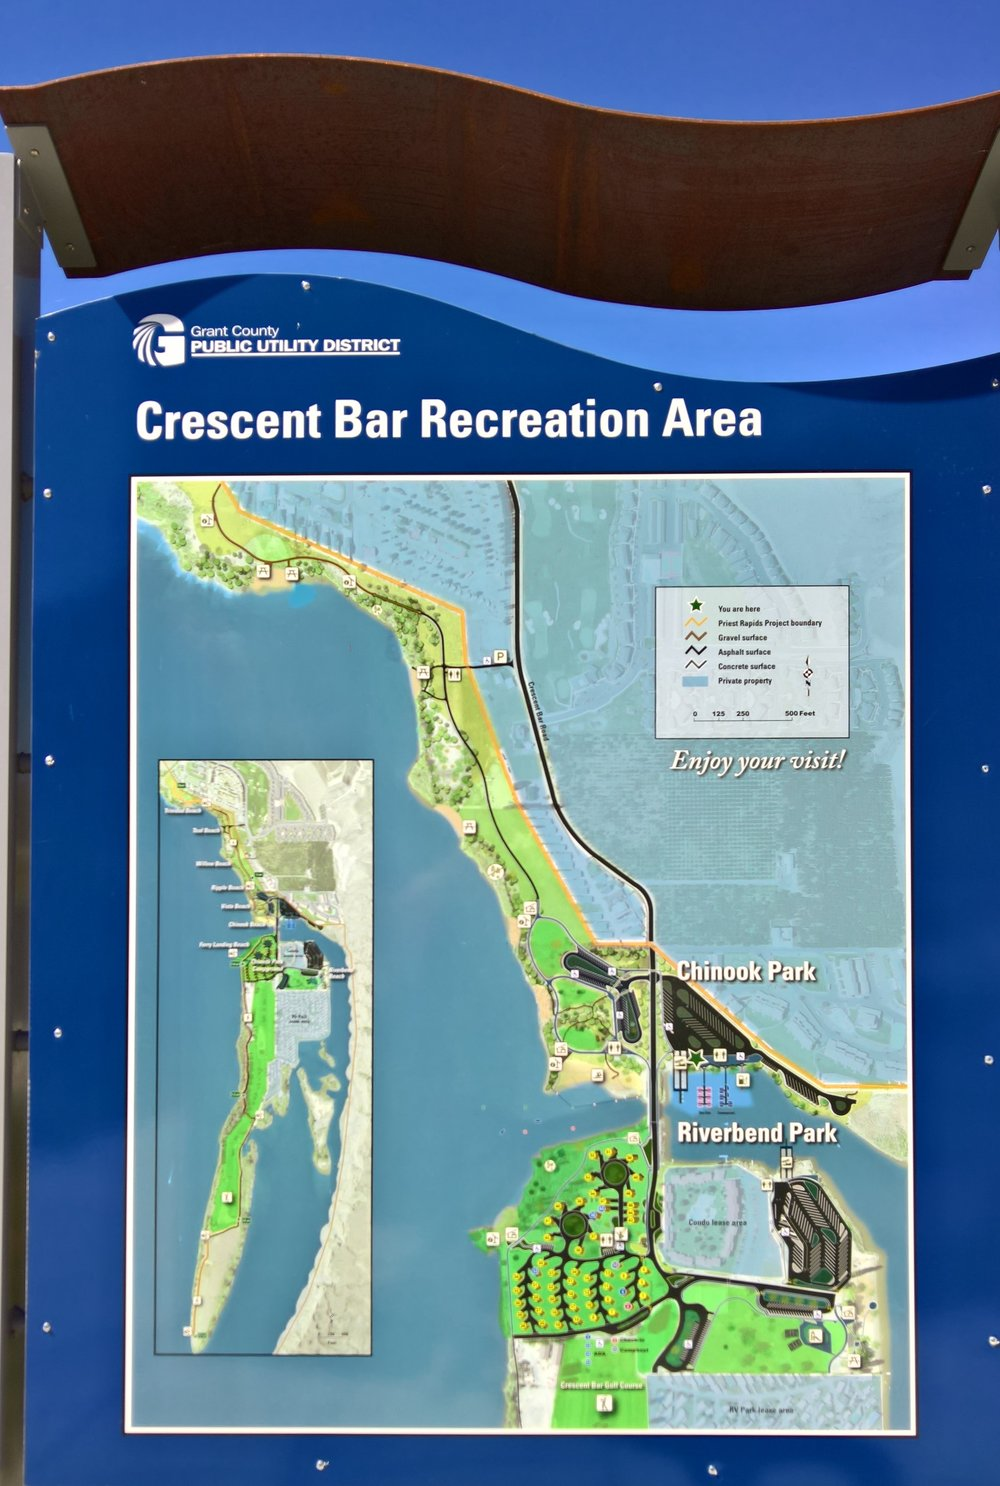 The signage at the on-island boat ramp prep area has maps of the CB area and illustrates recreation areas from Priest Rapids in the south, to Rock Island dam in the north.